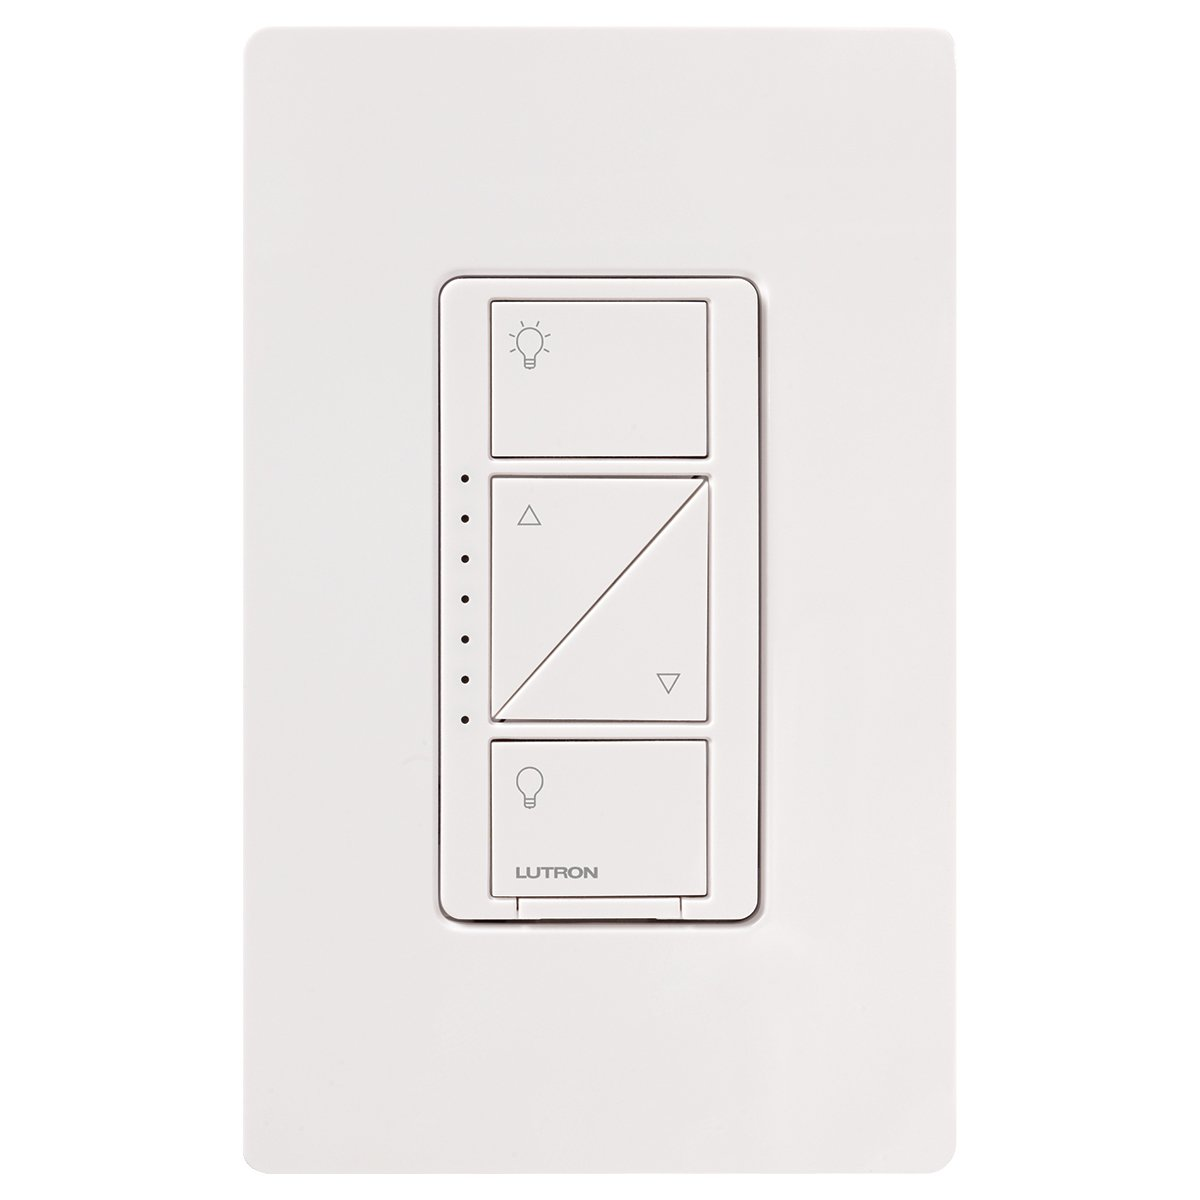 Lutron Caseta Wireless Smart Lighting Dimmer Switch for Wall & Ceiling Lights, PD-6WCL-WH, White, Works with Alexa, Apple HomeKit, and the Google Assistant by Lutron (Image #3)